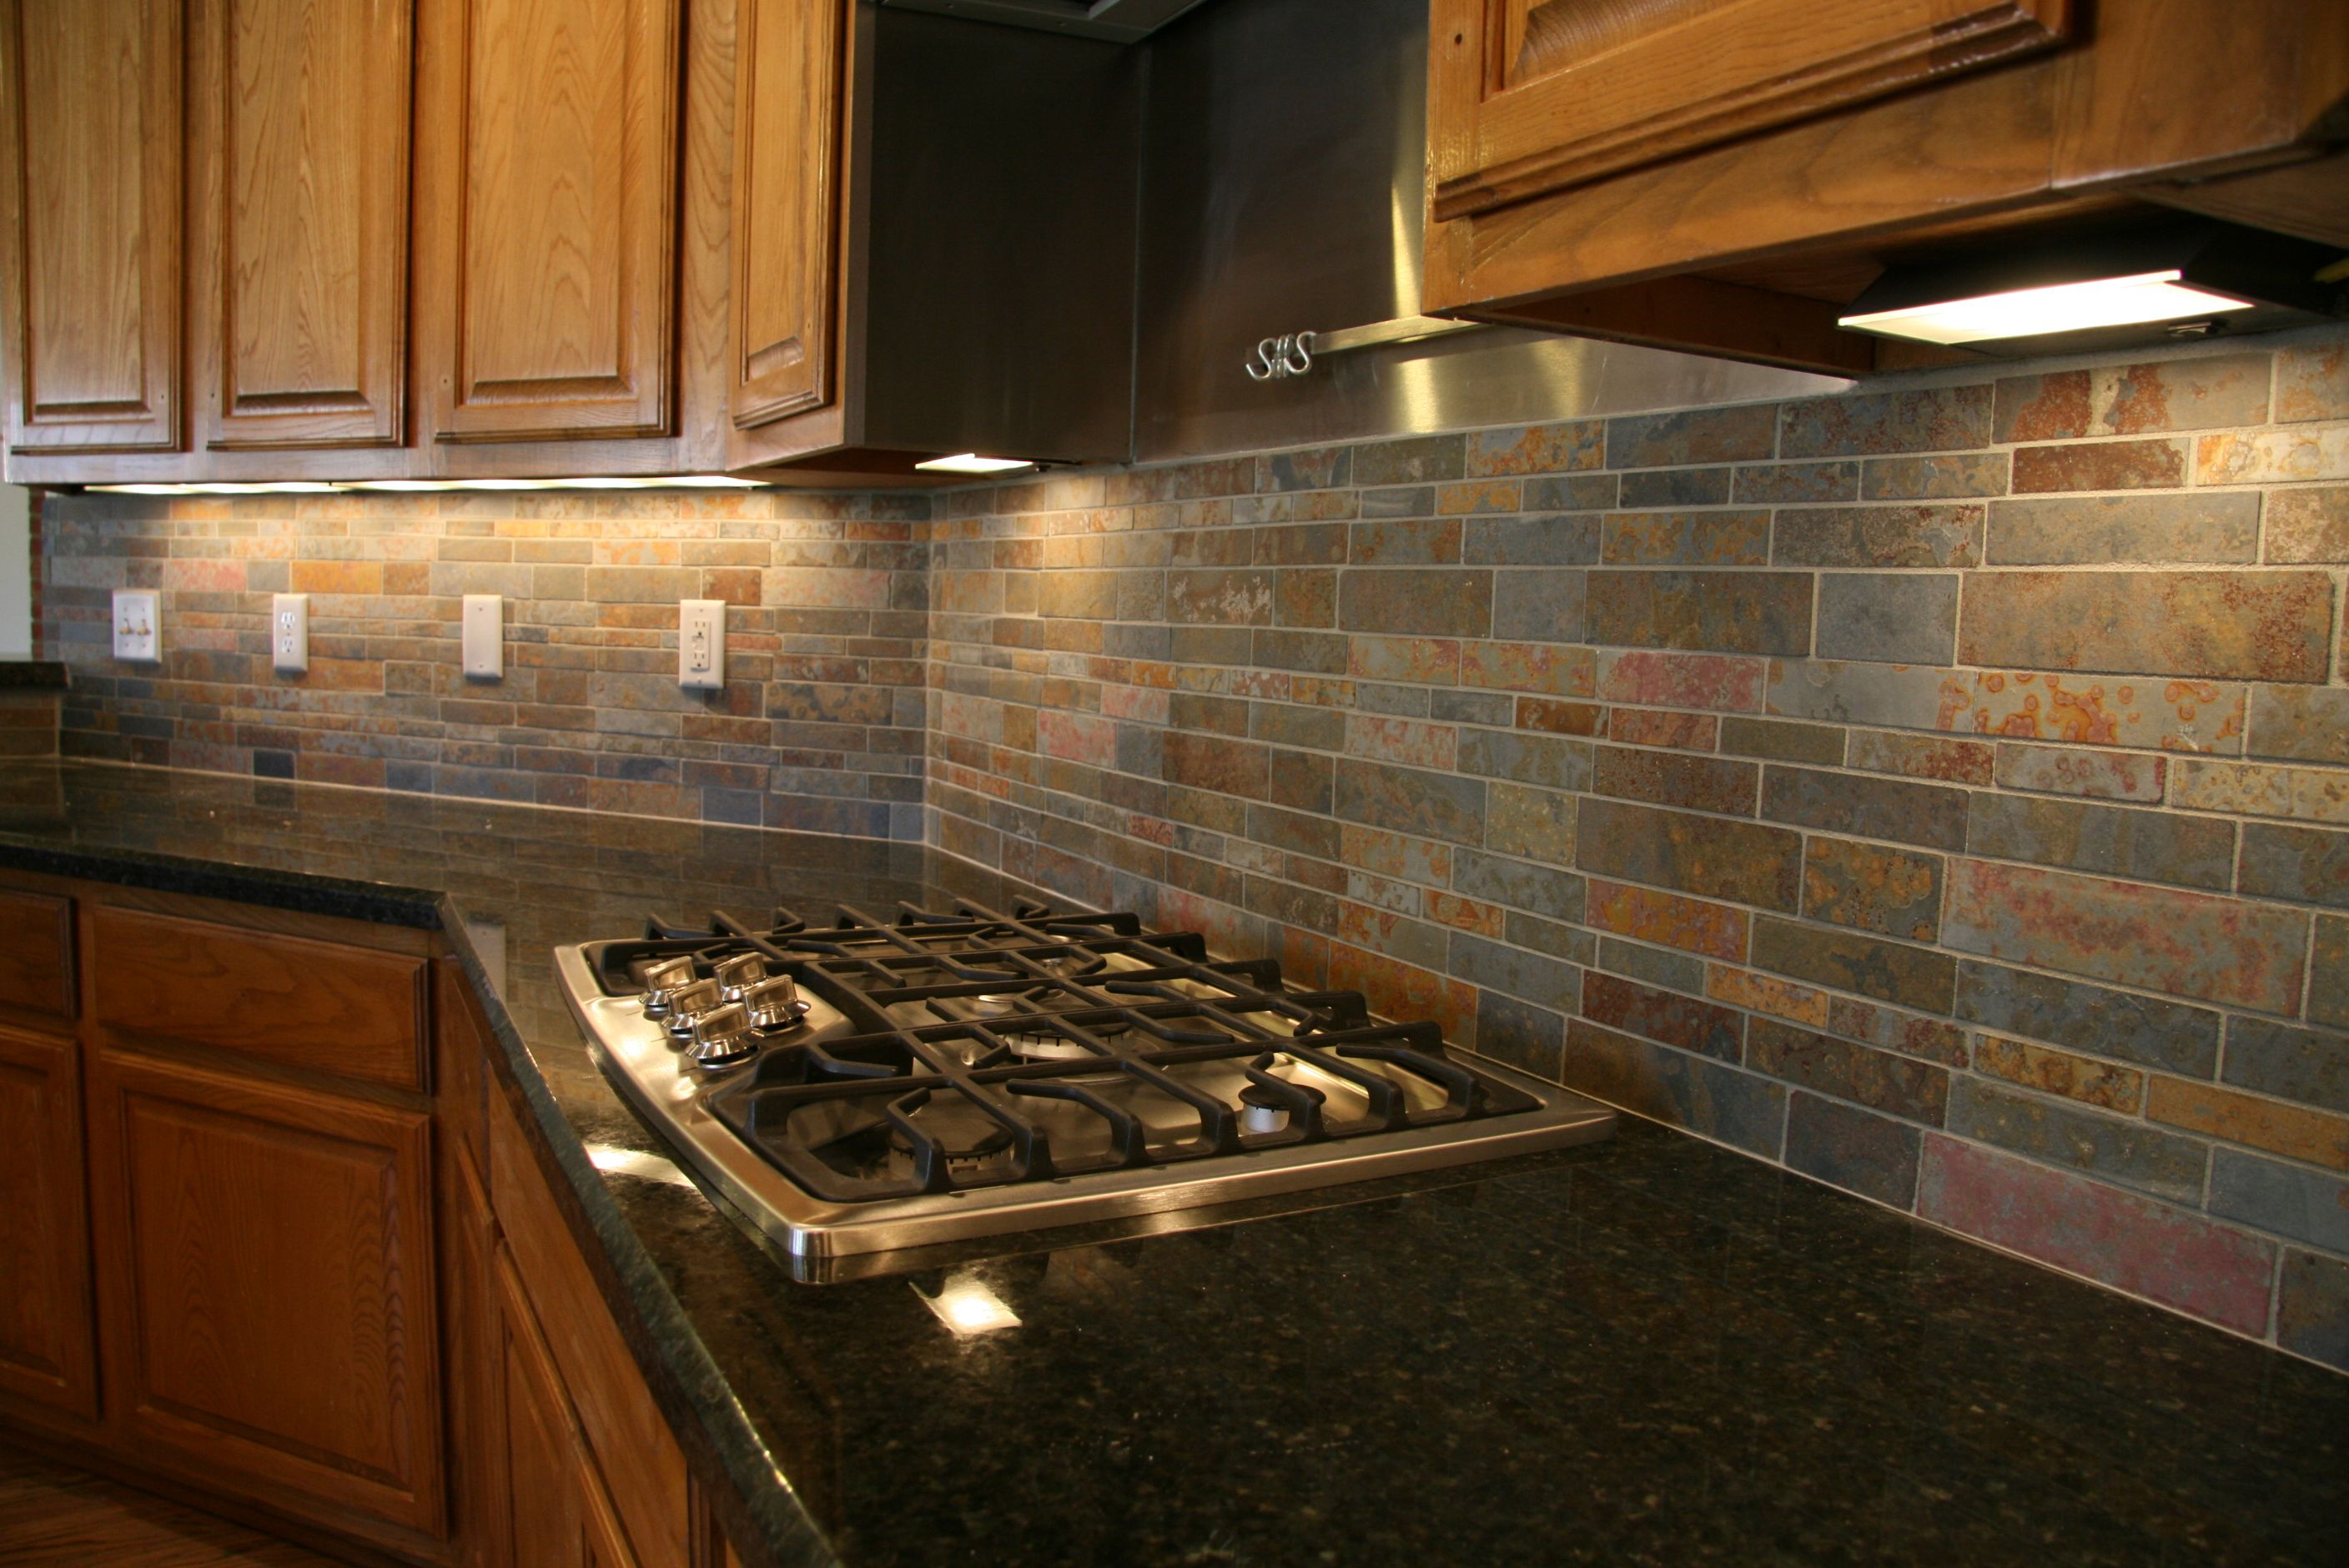 Seeking A Full Kitchen Remodel Impact Remodeling Is The Top